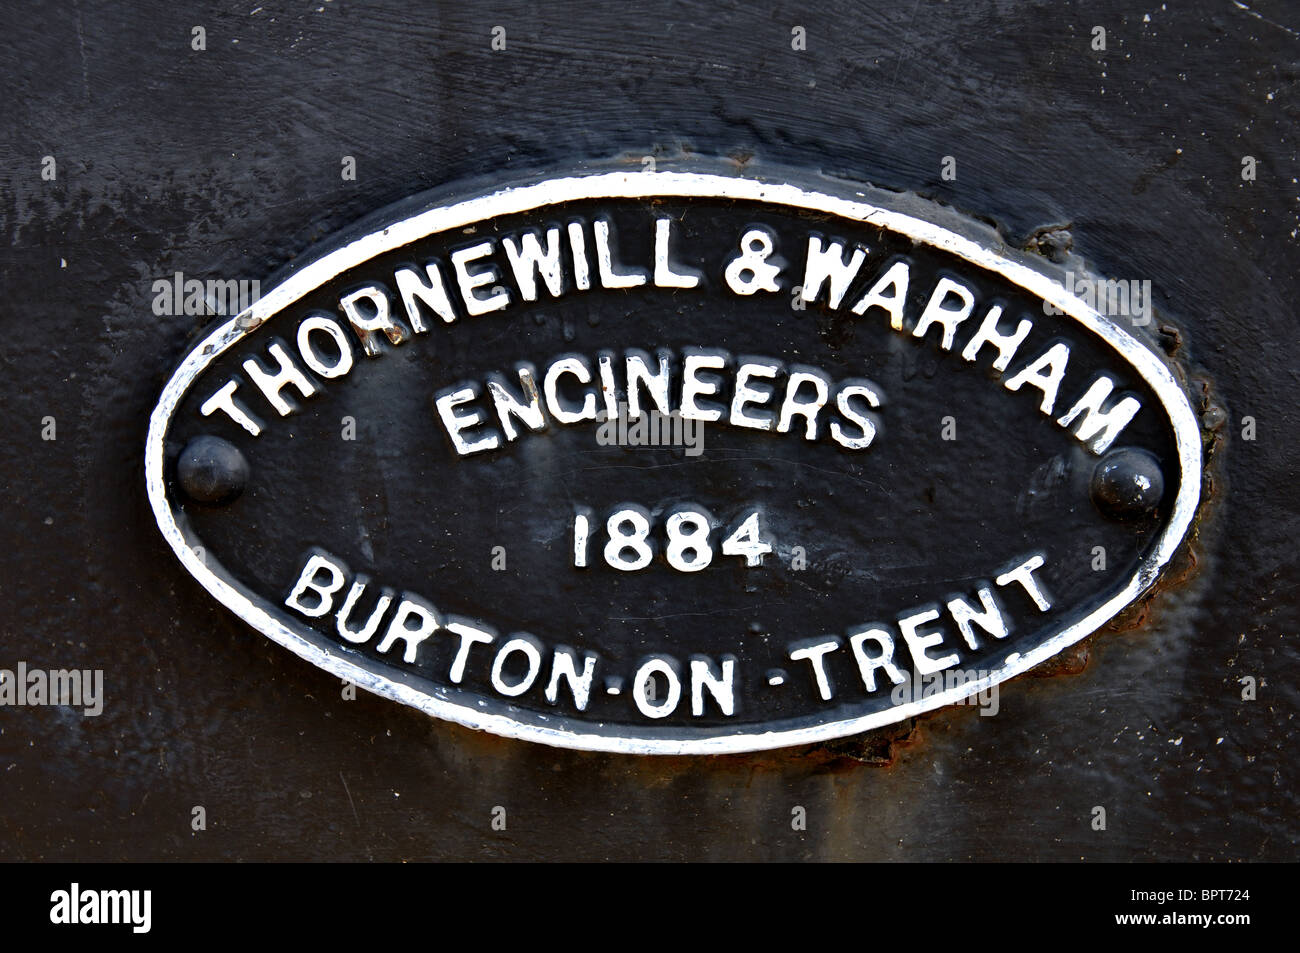 Makers plaque on Andresey Bridge, Burton on Trent, Staffordshire, England, UK Stock Photo